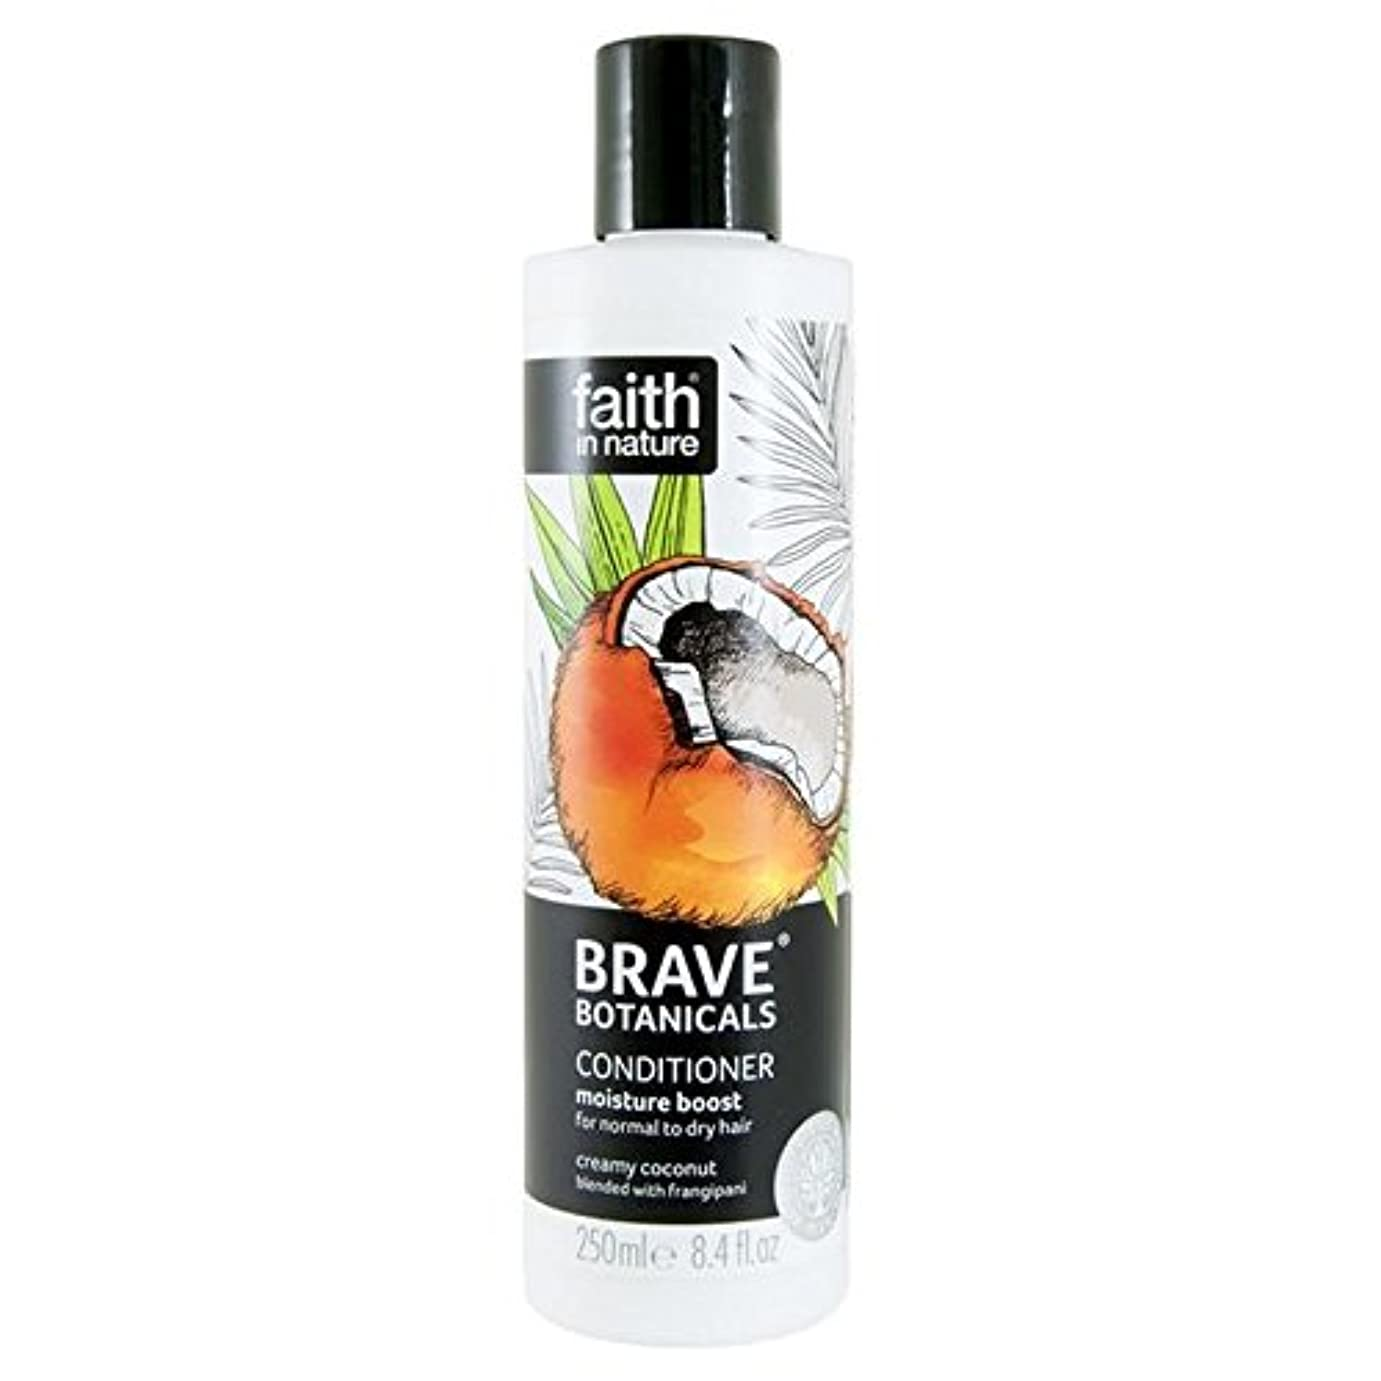 パケット最後の神経Brave Botanicals Coconut & Frangipani Moisture Boost Conditioner 250ml (Pack of 4) - (Faith In Nature) 勇敢な植物ココナッツ...